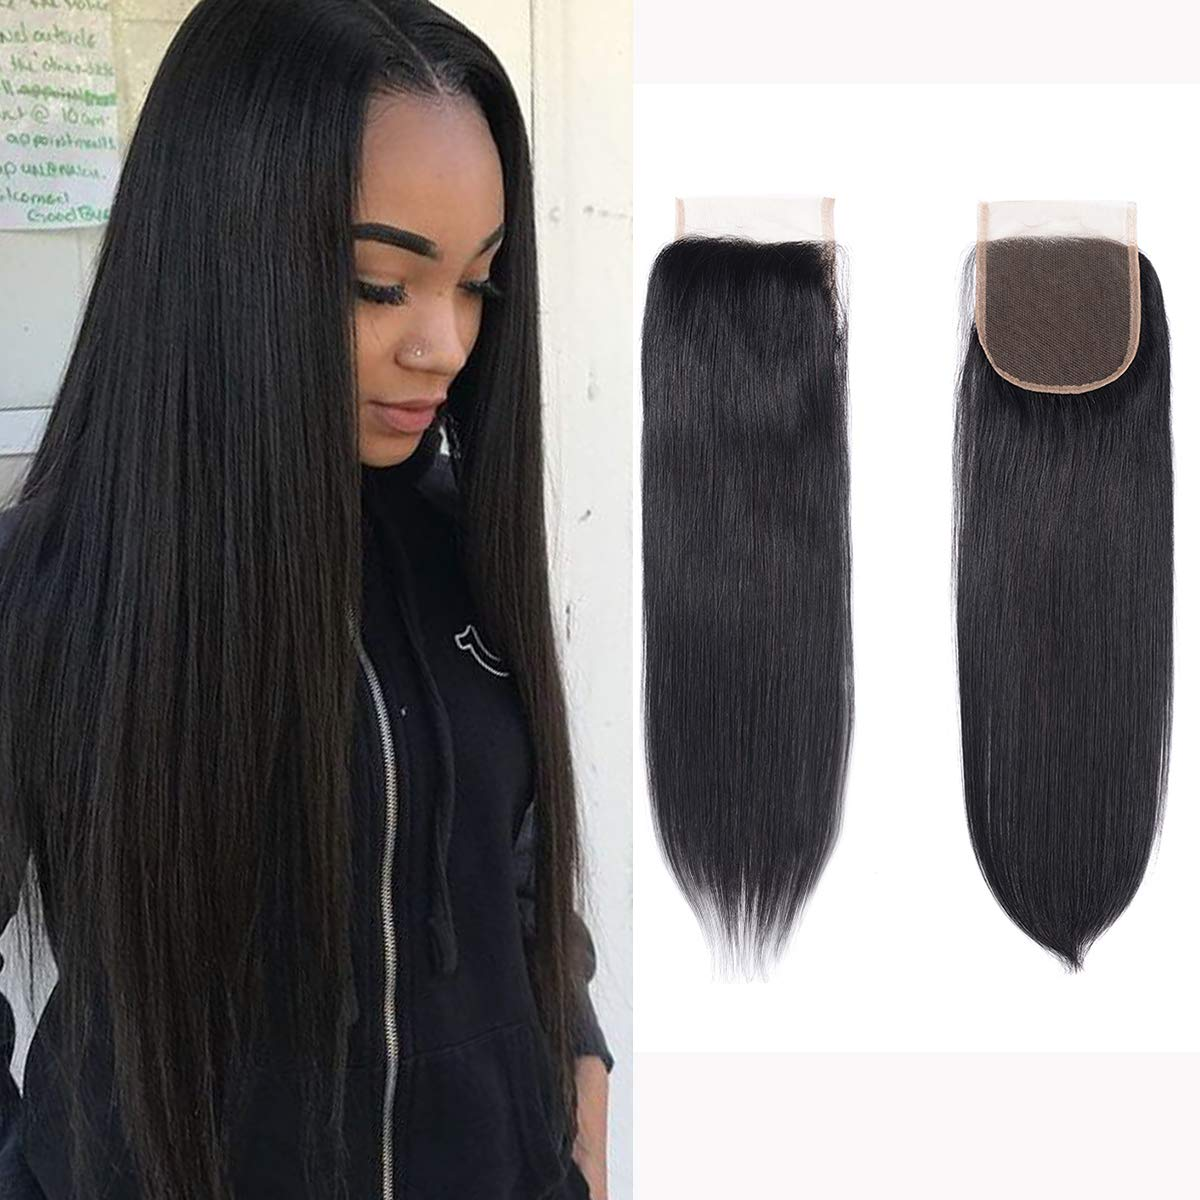 Brazilian Virgin Human Hair Lace Closure Straight 4x4 Free Part Silk Straight Human Hair Top Lace Closure 8A Grade 16 Inch Natural Black Color